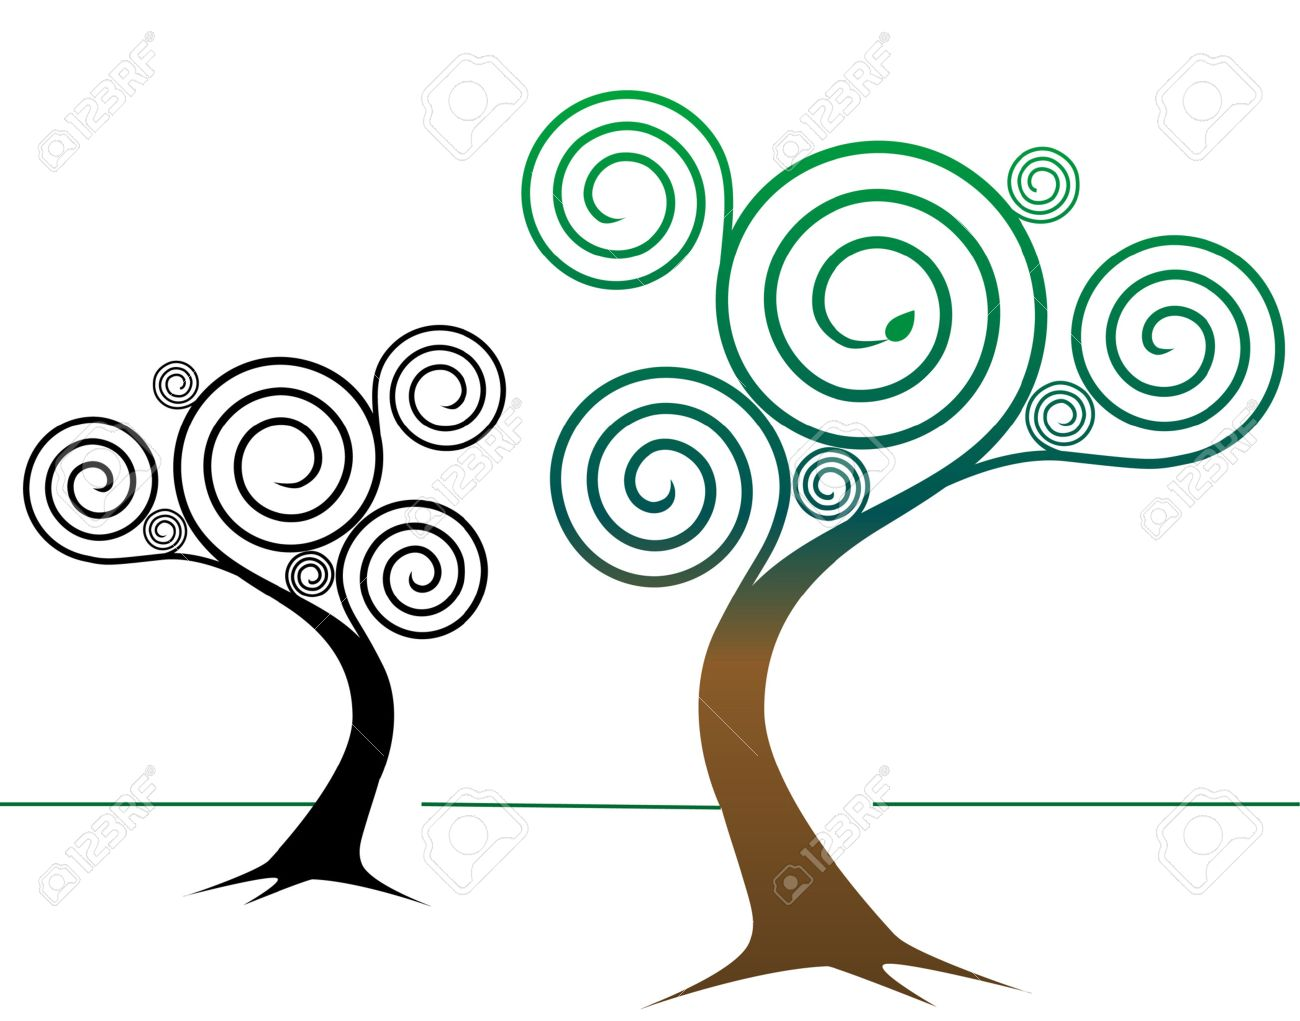 two spirally abstract tree designs one colorful springtime